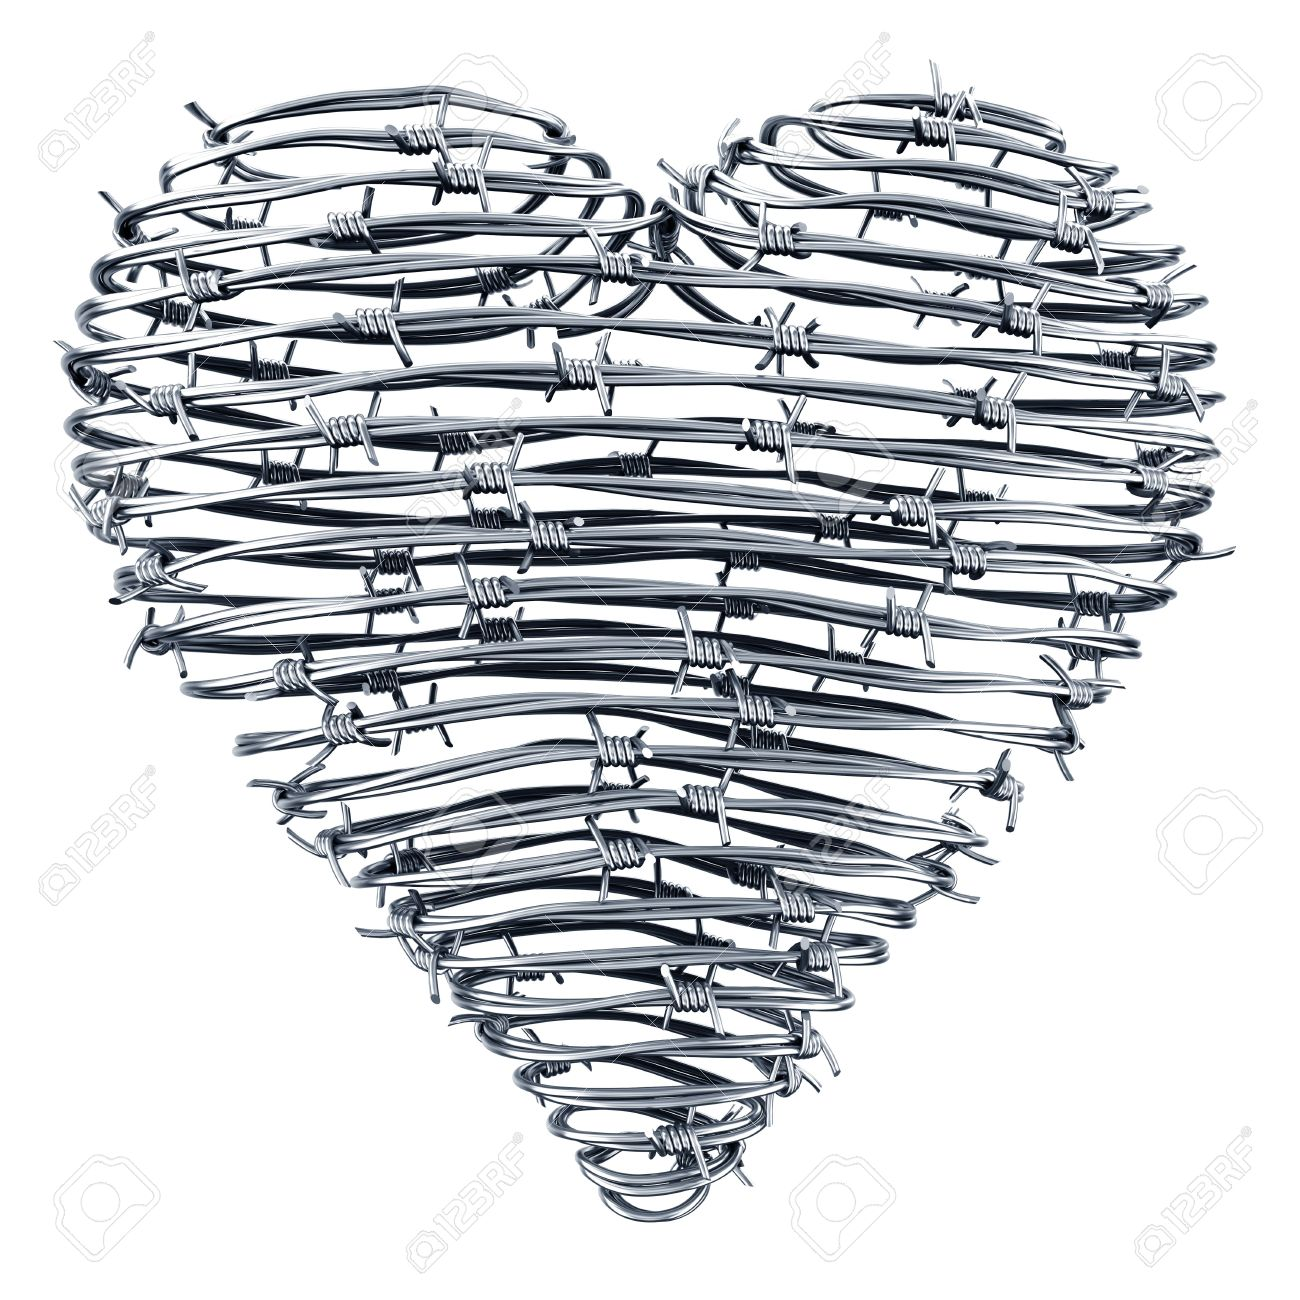 3D Rendering Of A Heart Made Out Of Barbed Wires Stock Photo ...